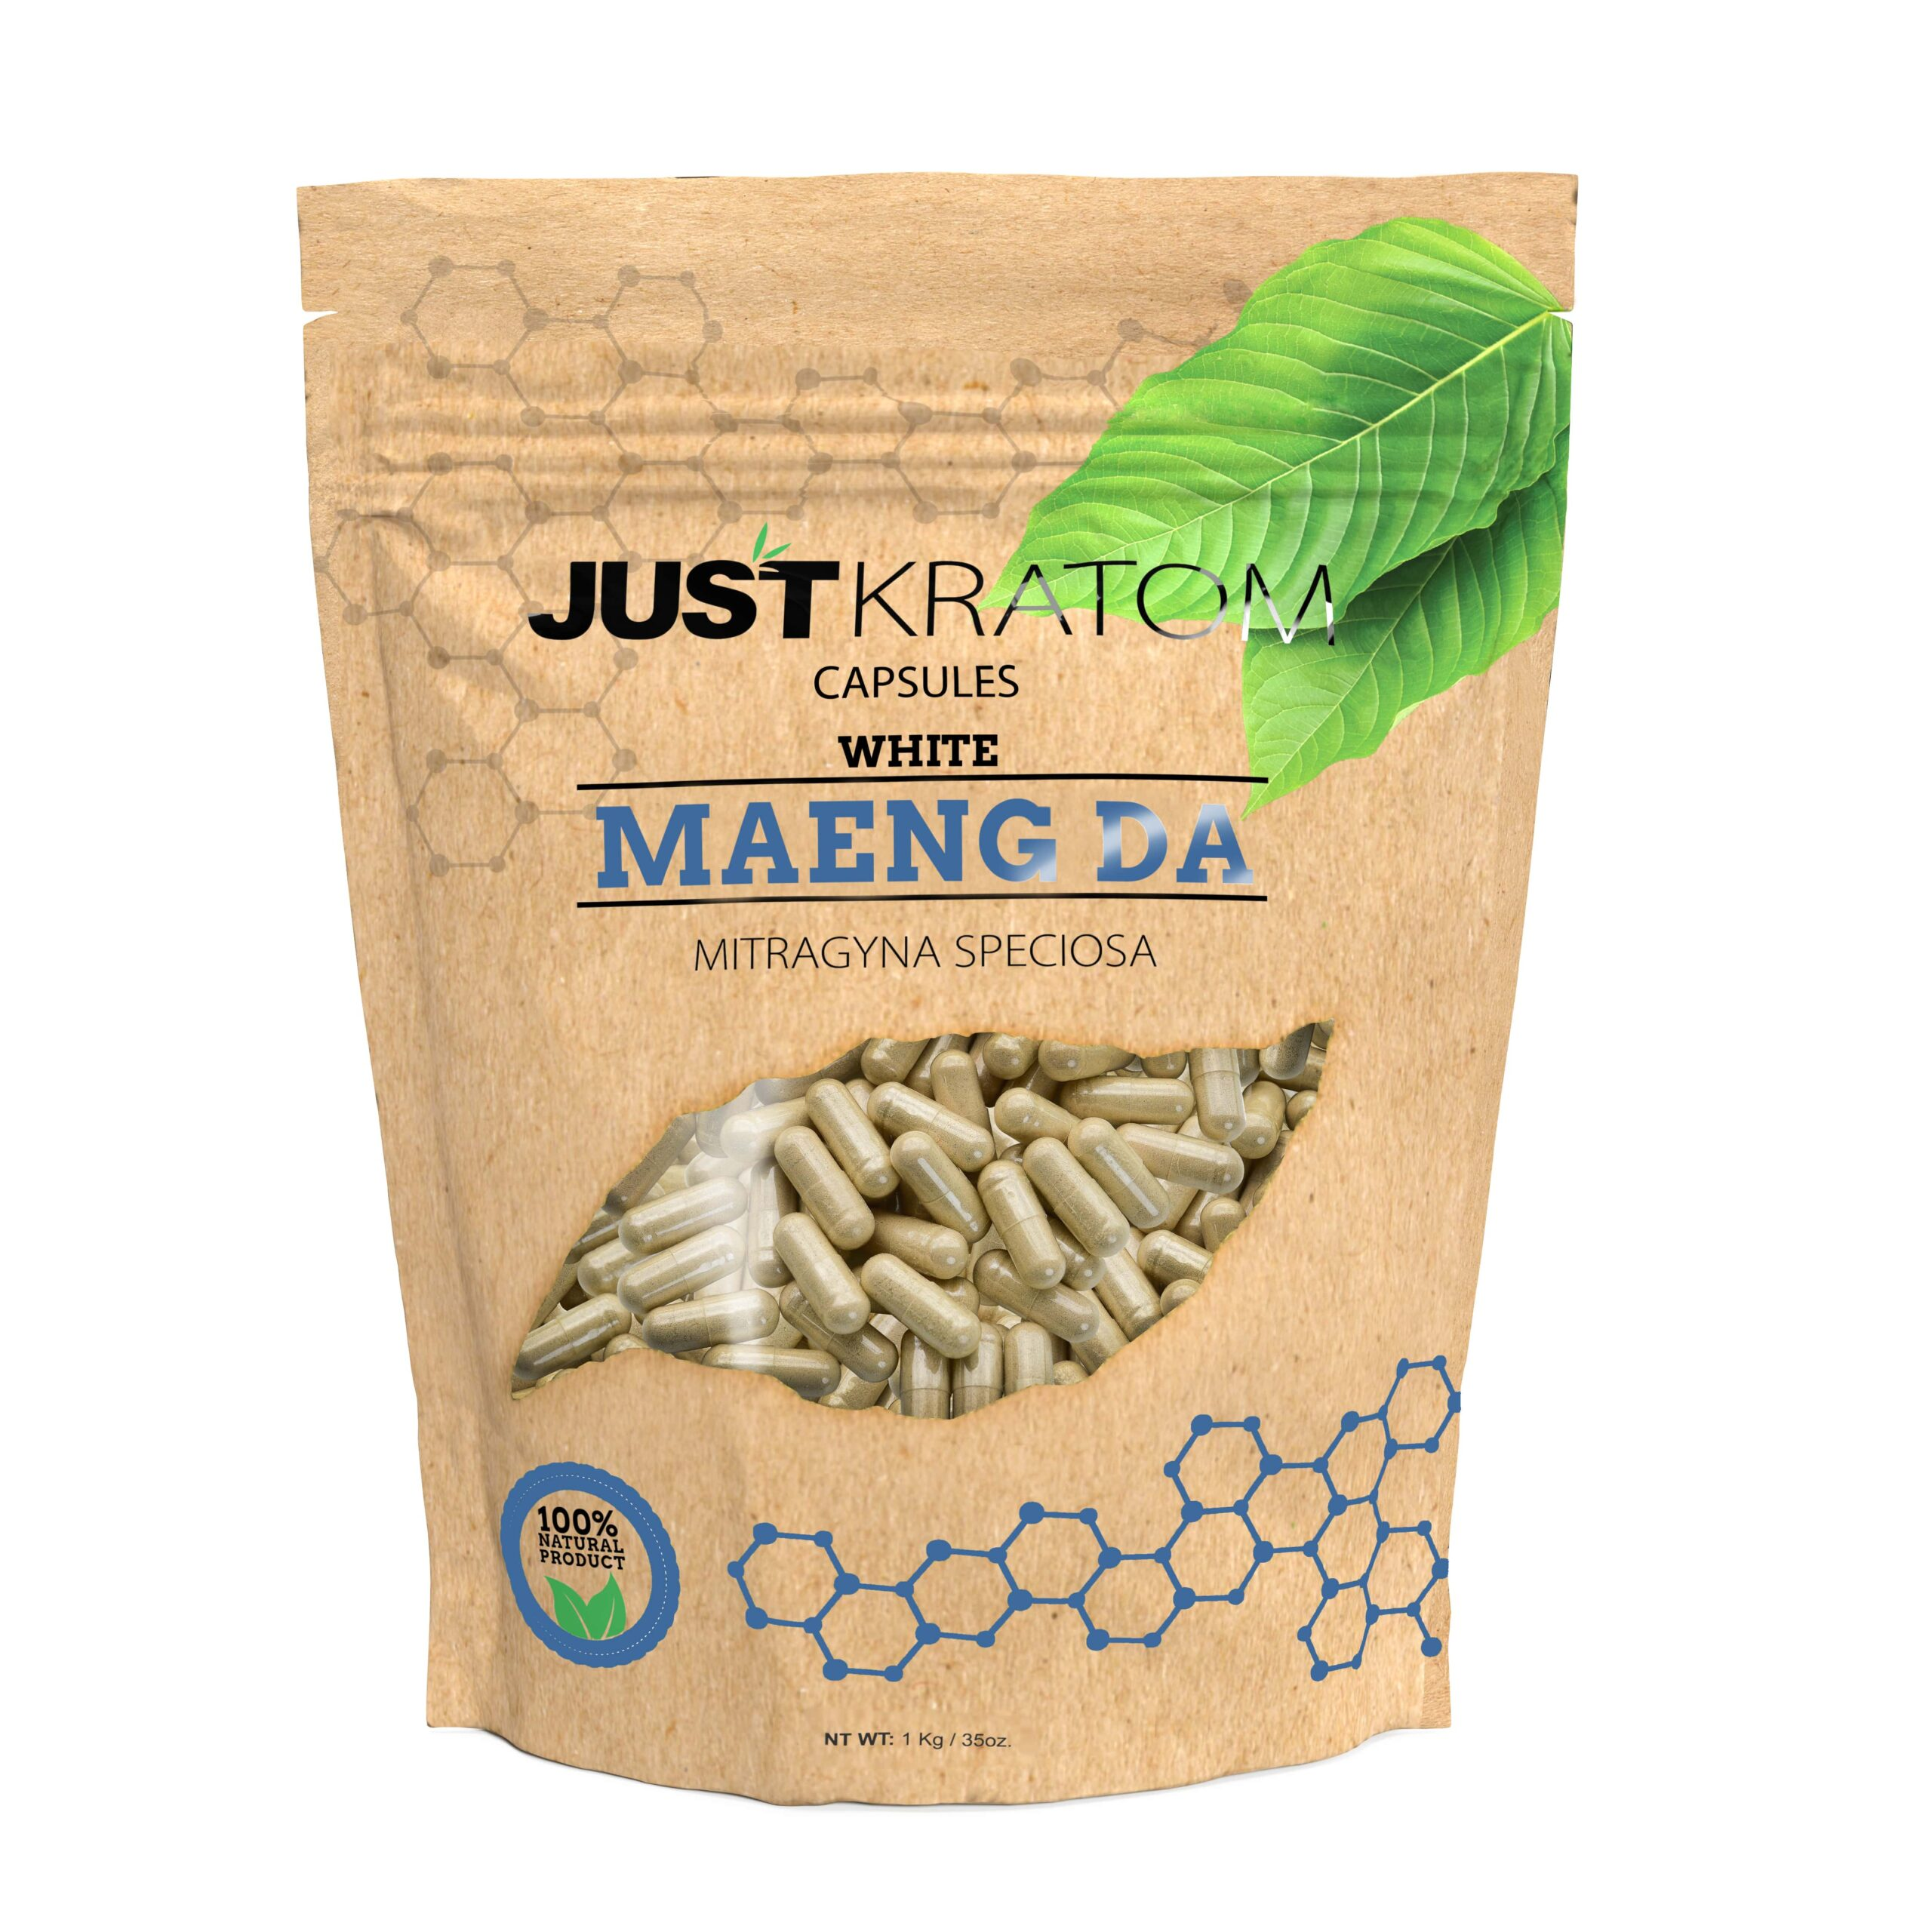 What Does Kratom Help With